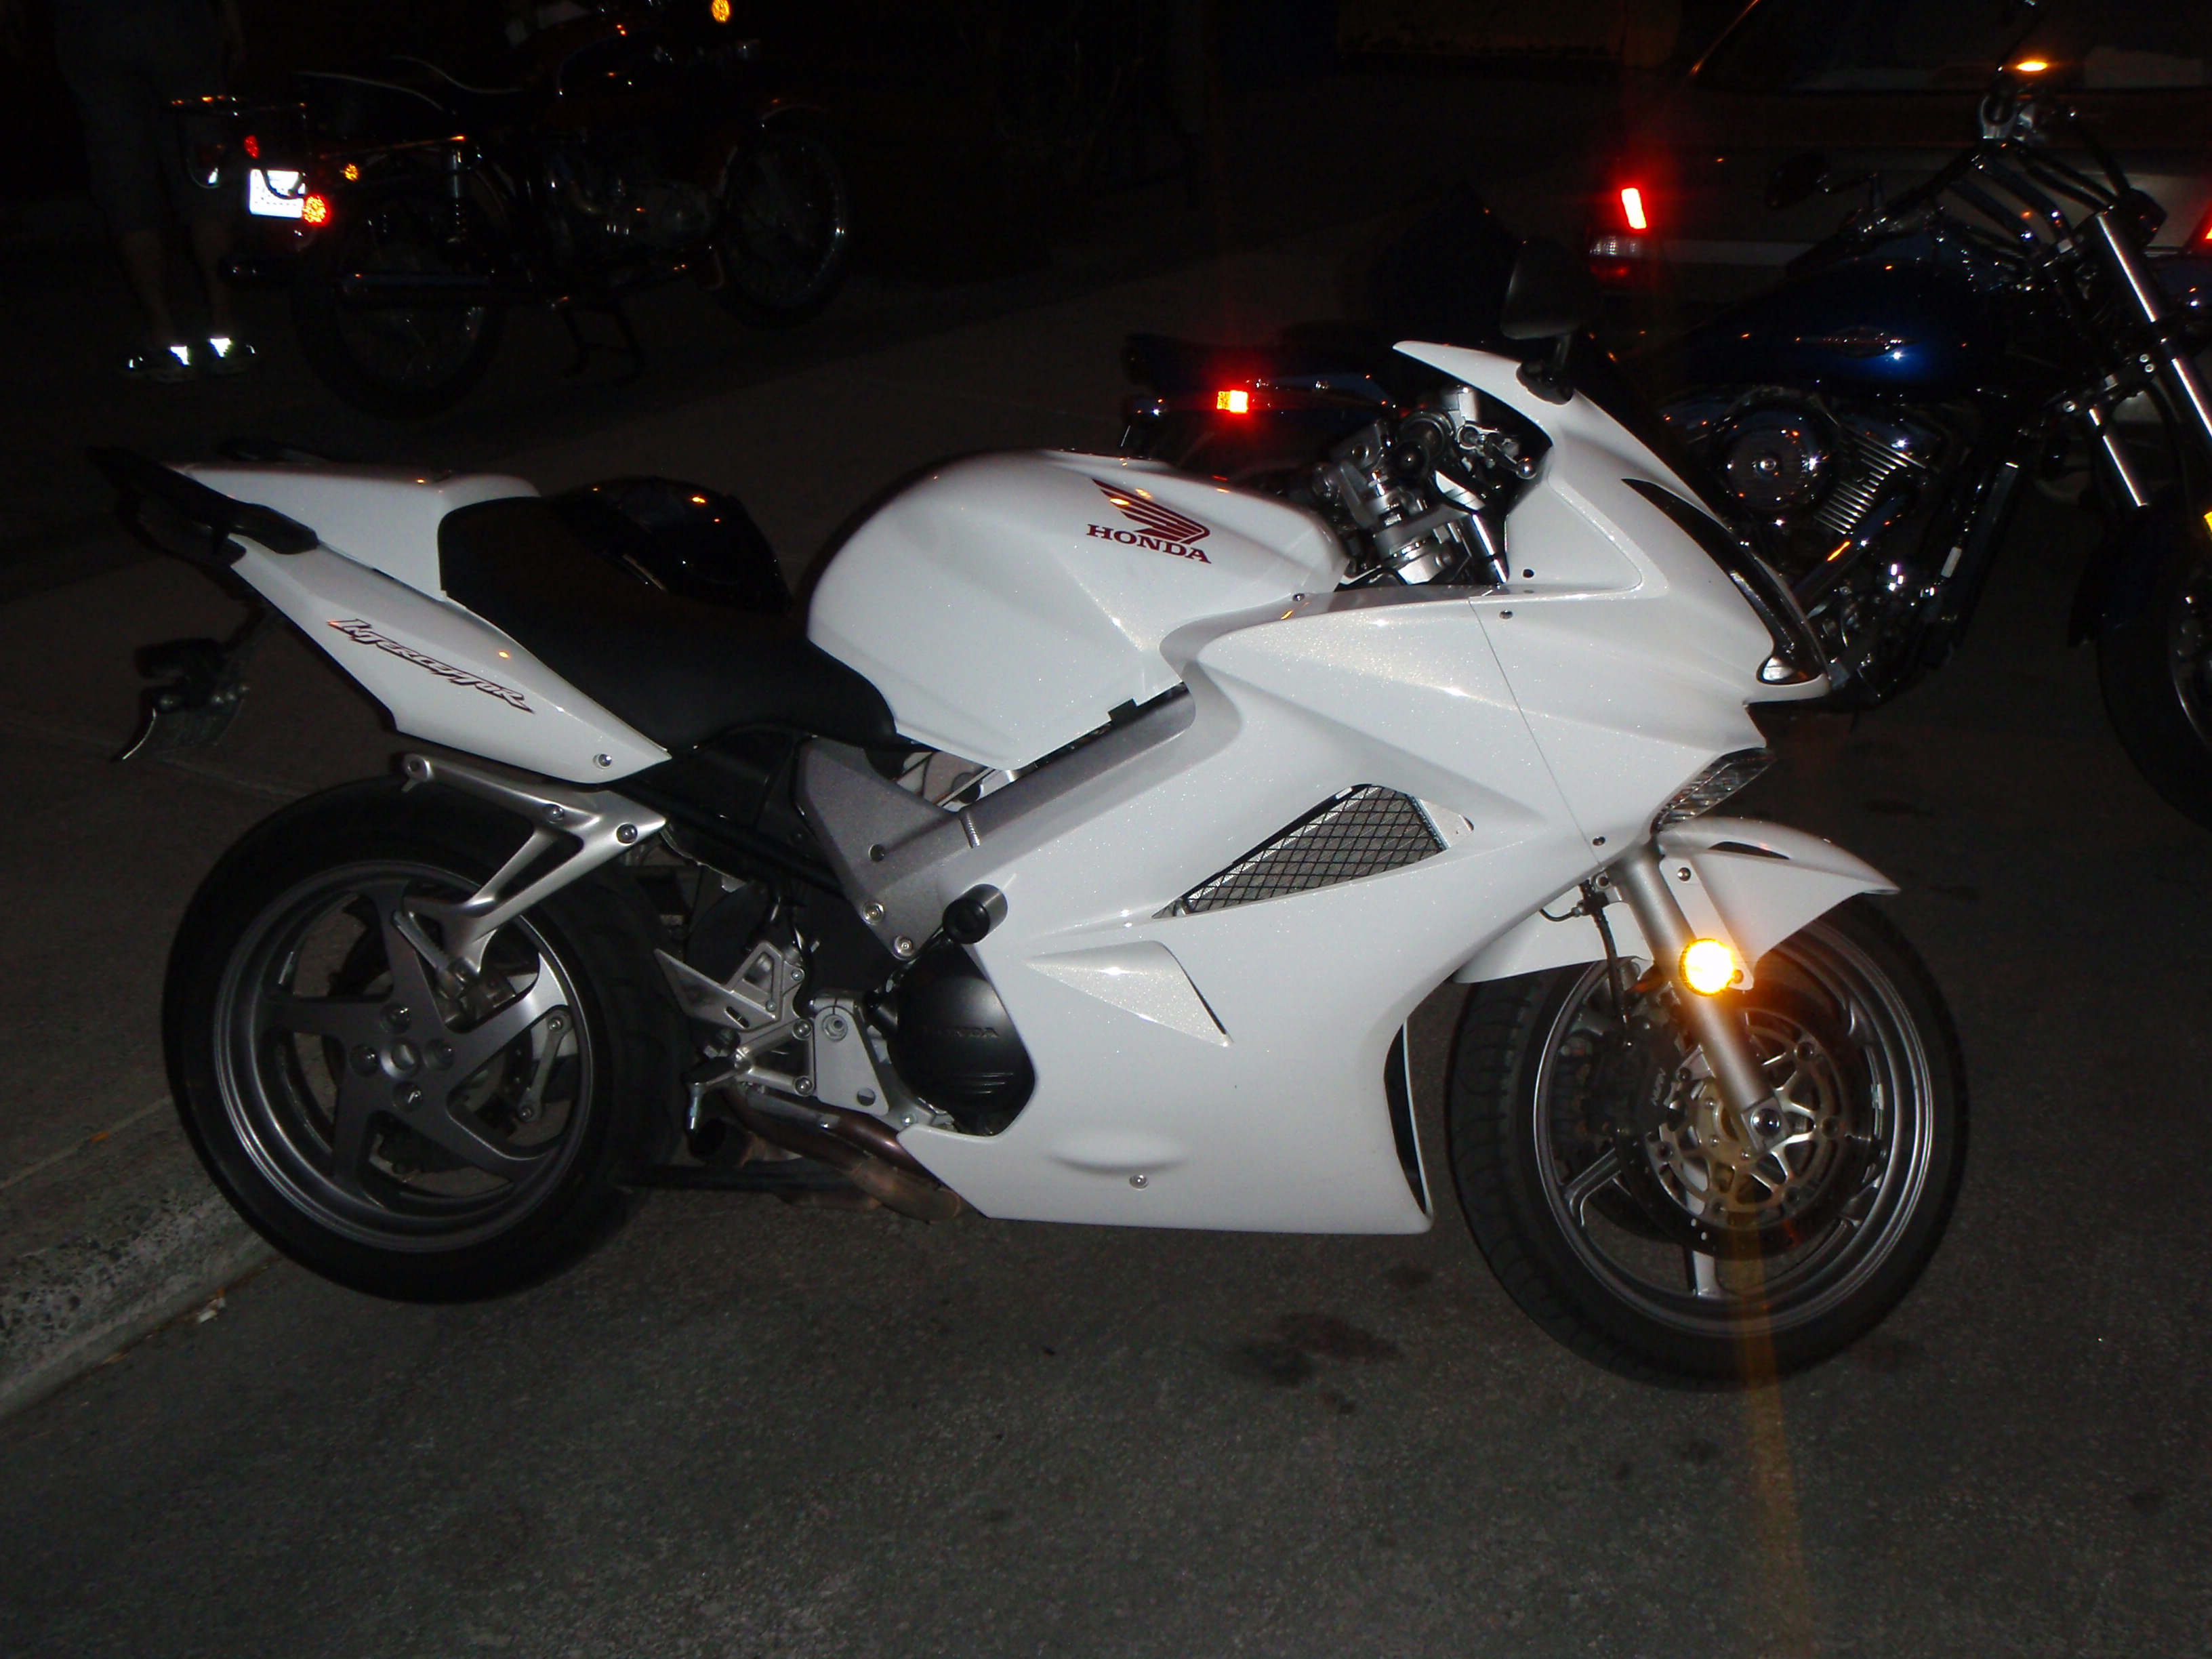 2006 Honda Interceptor VFR800